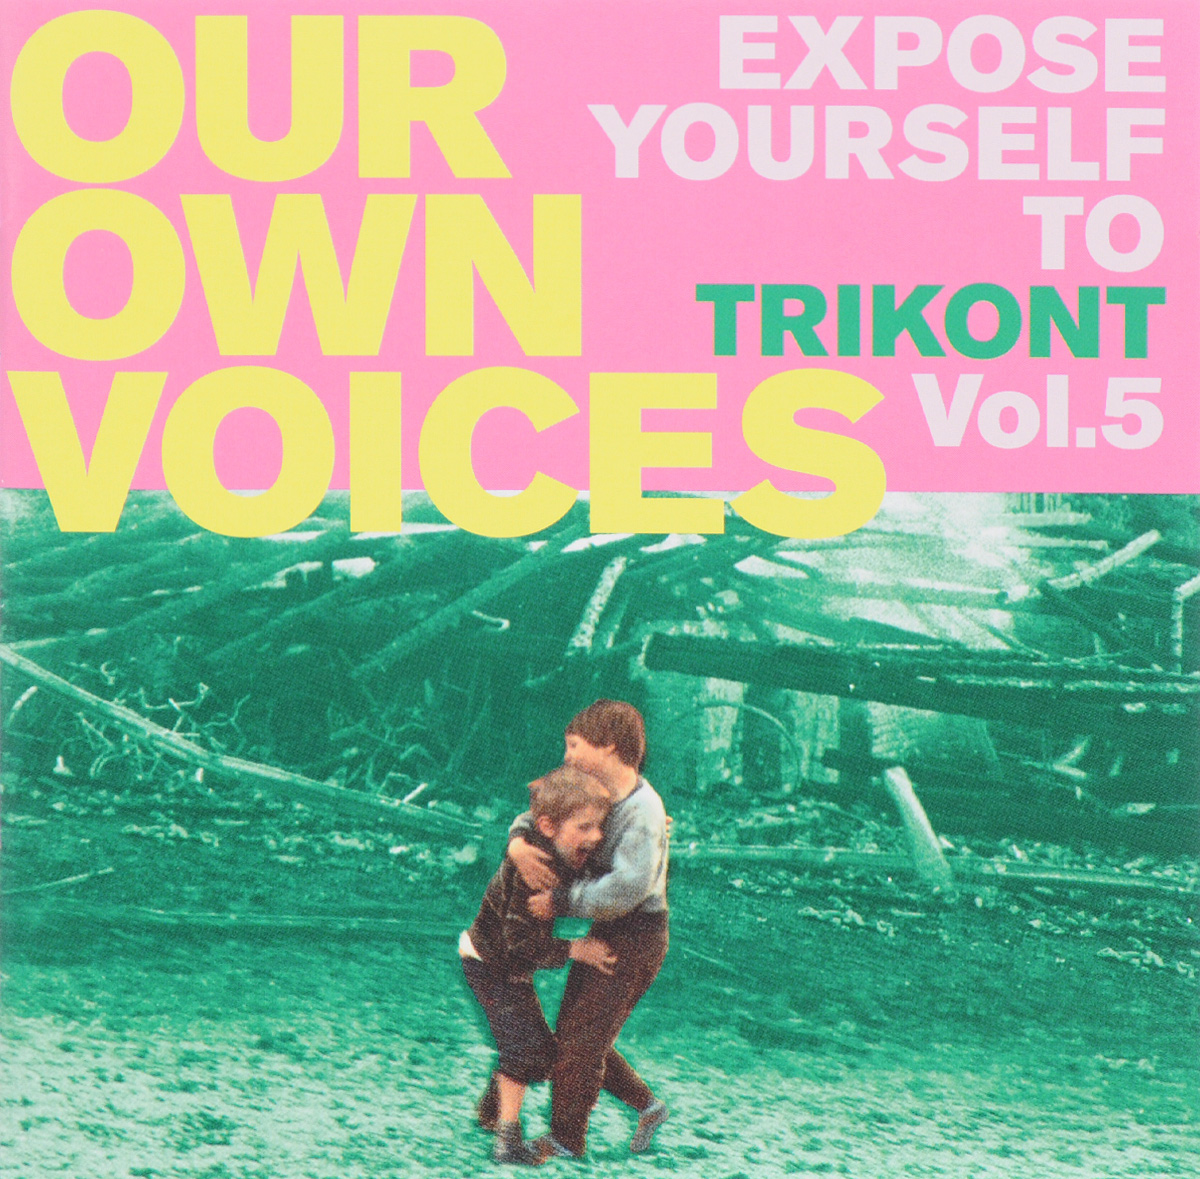 Express Brass Band,Tubbe,Textor,Coconami,Chuck Perkins,Донни Элберт,Eric Pfeil,Attwenger,Лидия Дэйхер,Tatafull Our Own Voices. Expose Yourself To Trikont. Vol. 5 (2 CD) би 2 – prague metropolitan symphonic orchestra vol 2 cd